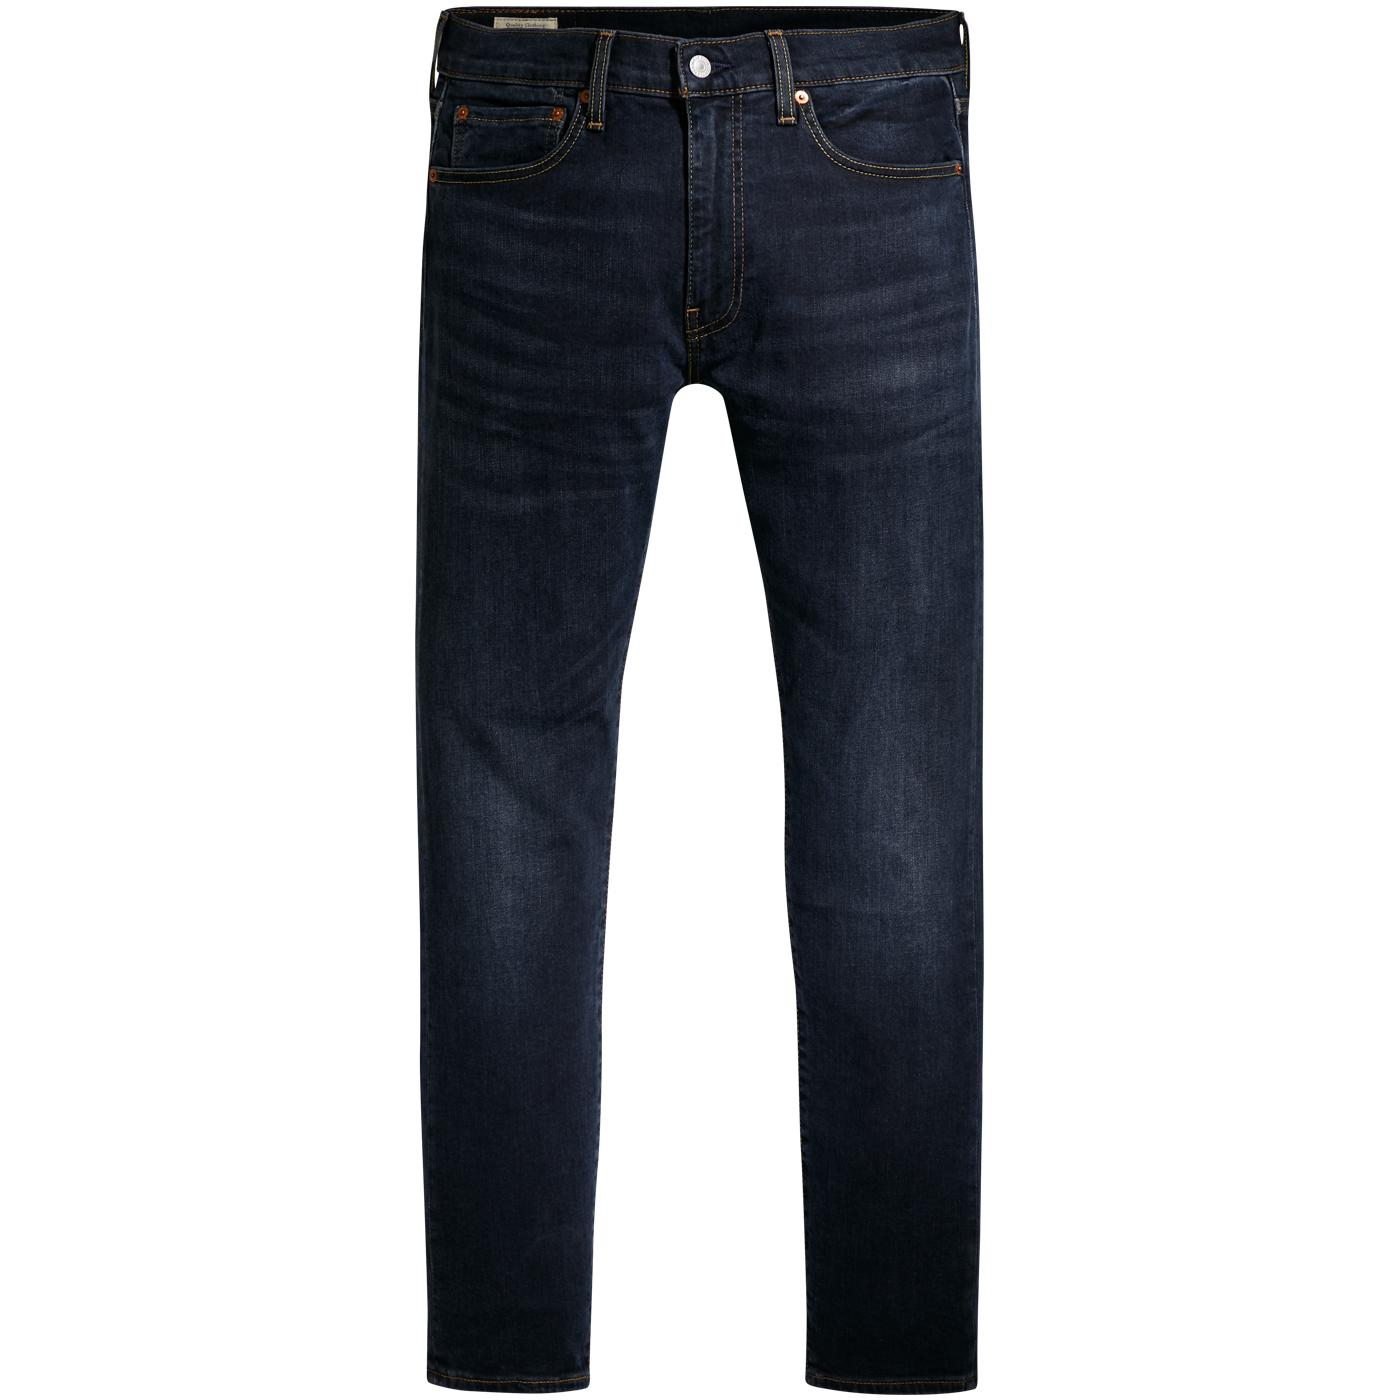 LEVI'S 512 Slim Taper Jeans (Shake The Boat Adv)